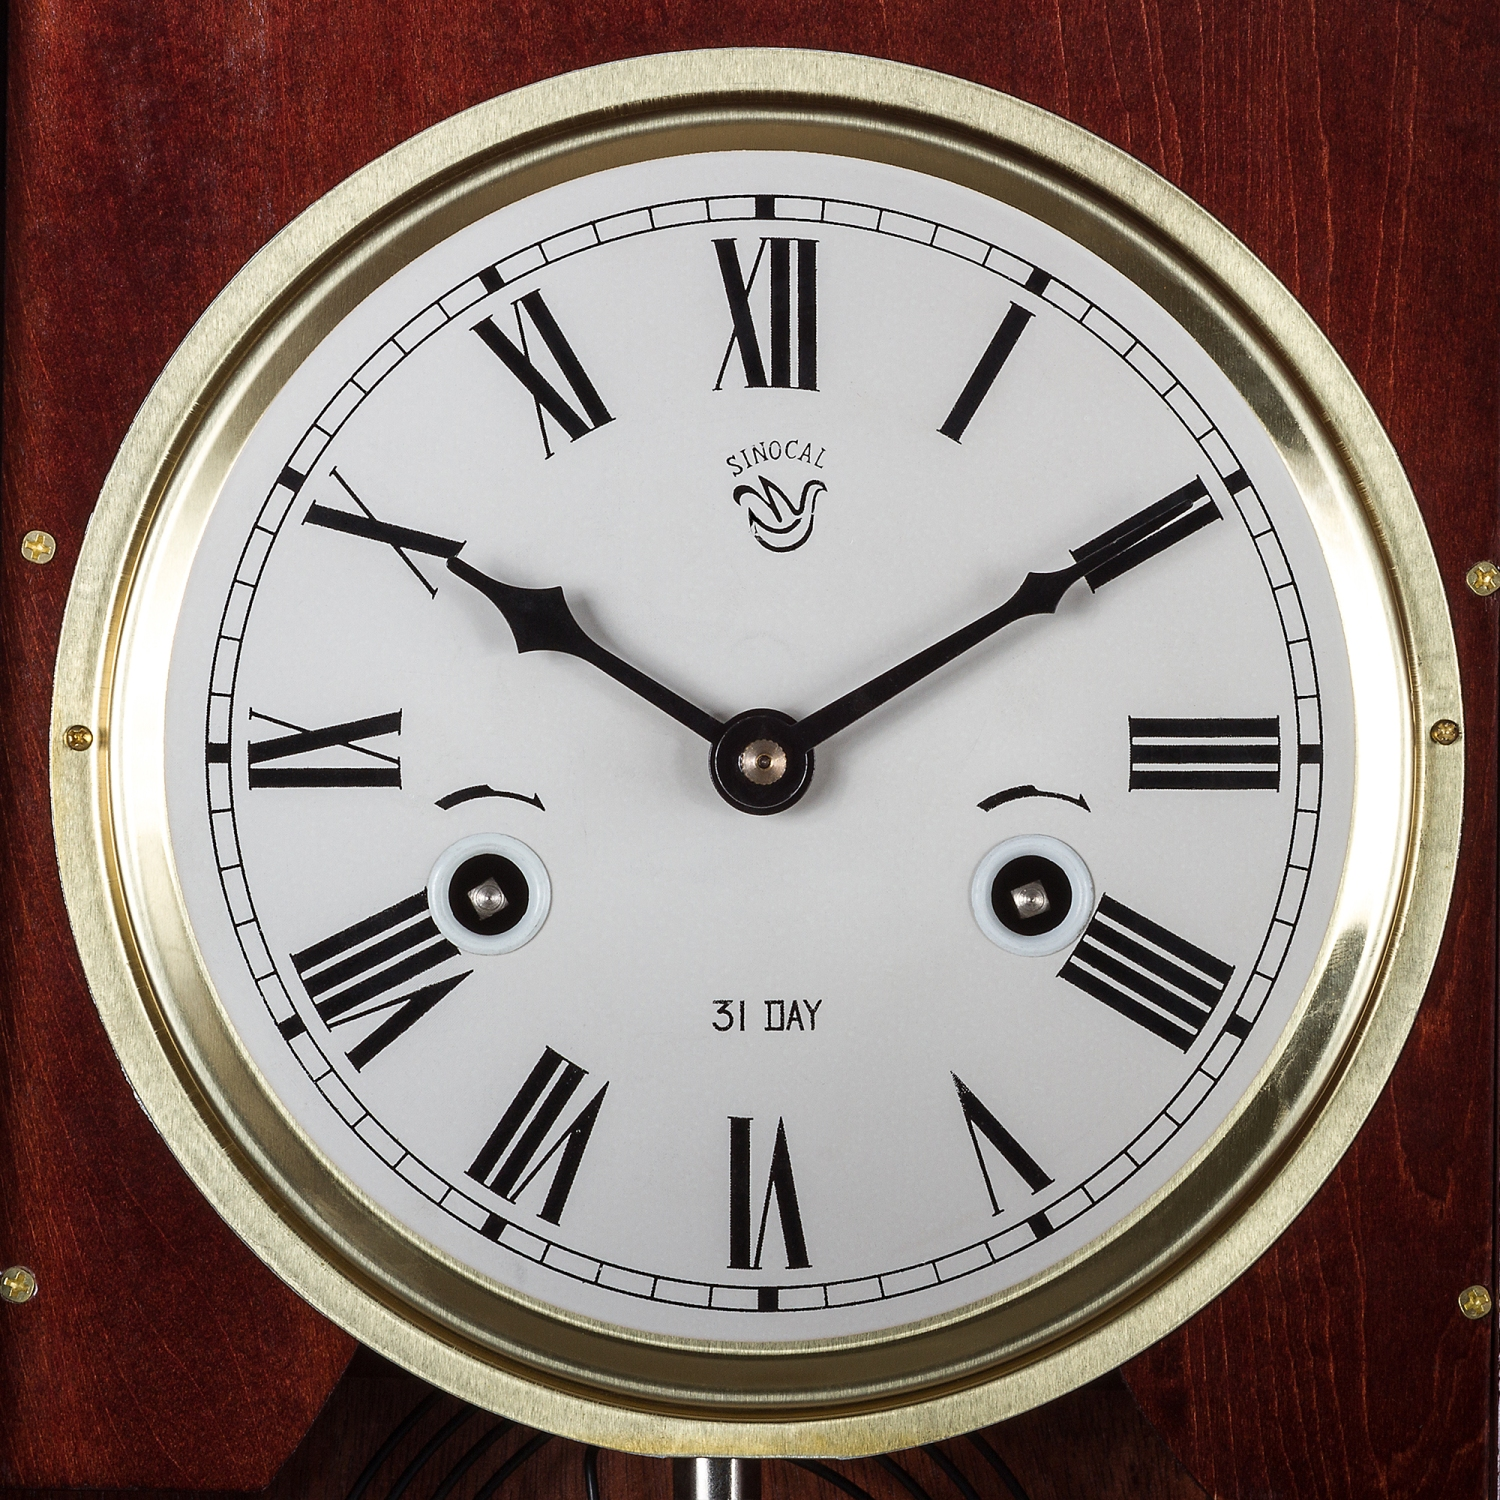 magnifique horloge murale au acajou style horloge pendule regulator ebay. Black Bedroom Furniture Sets. Home Design Ideas